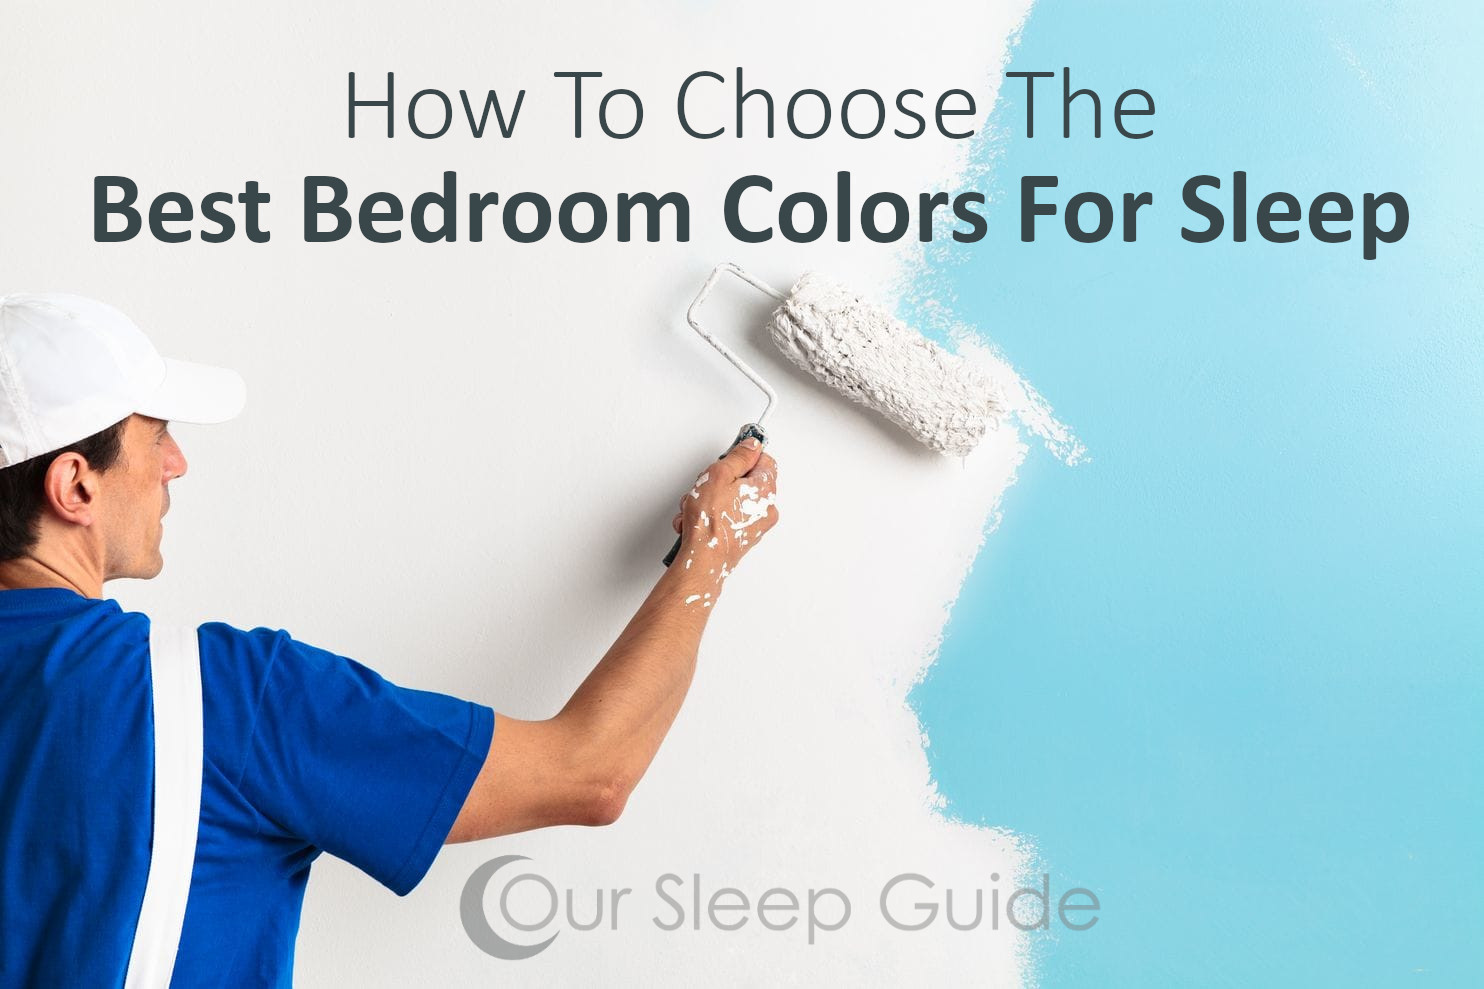 what are the best bedroom colors for sleep